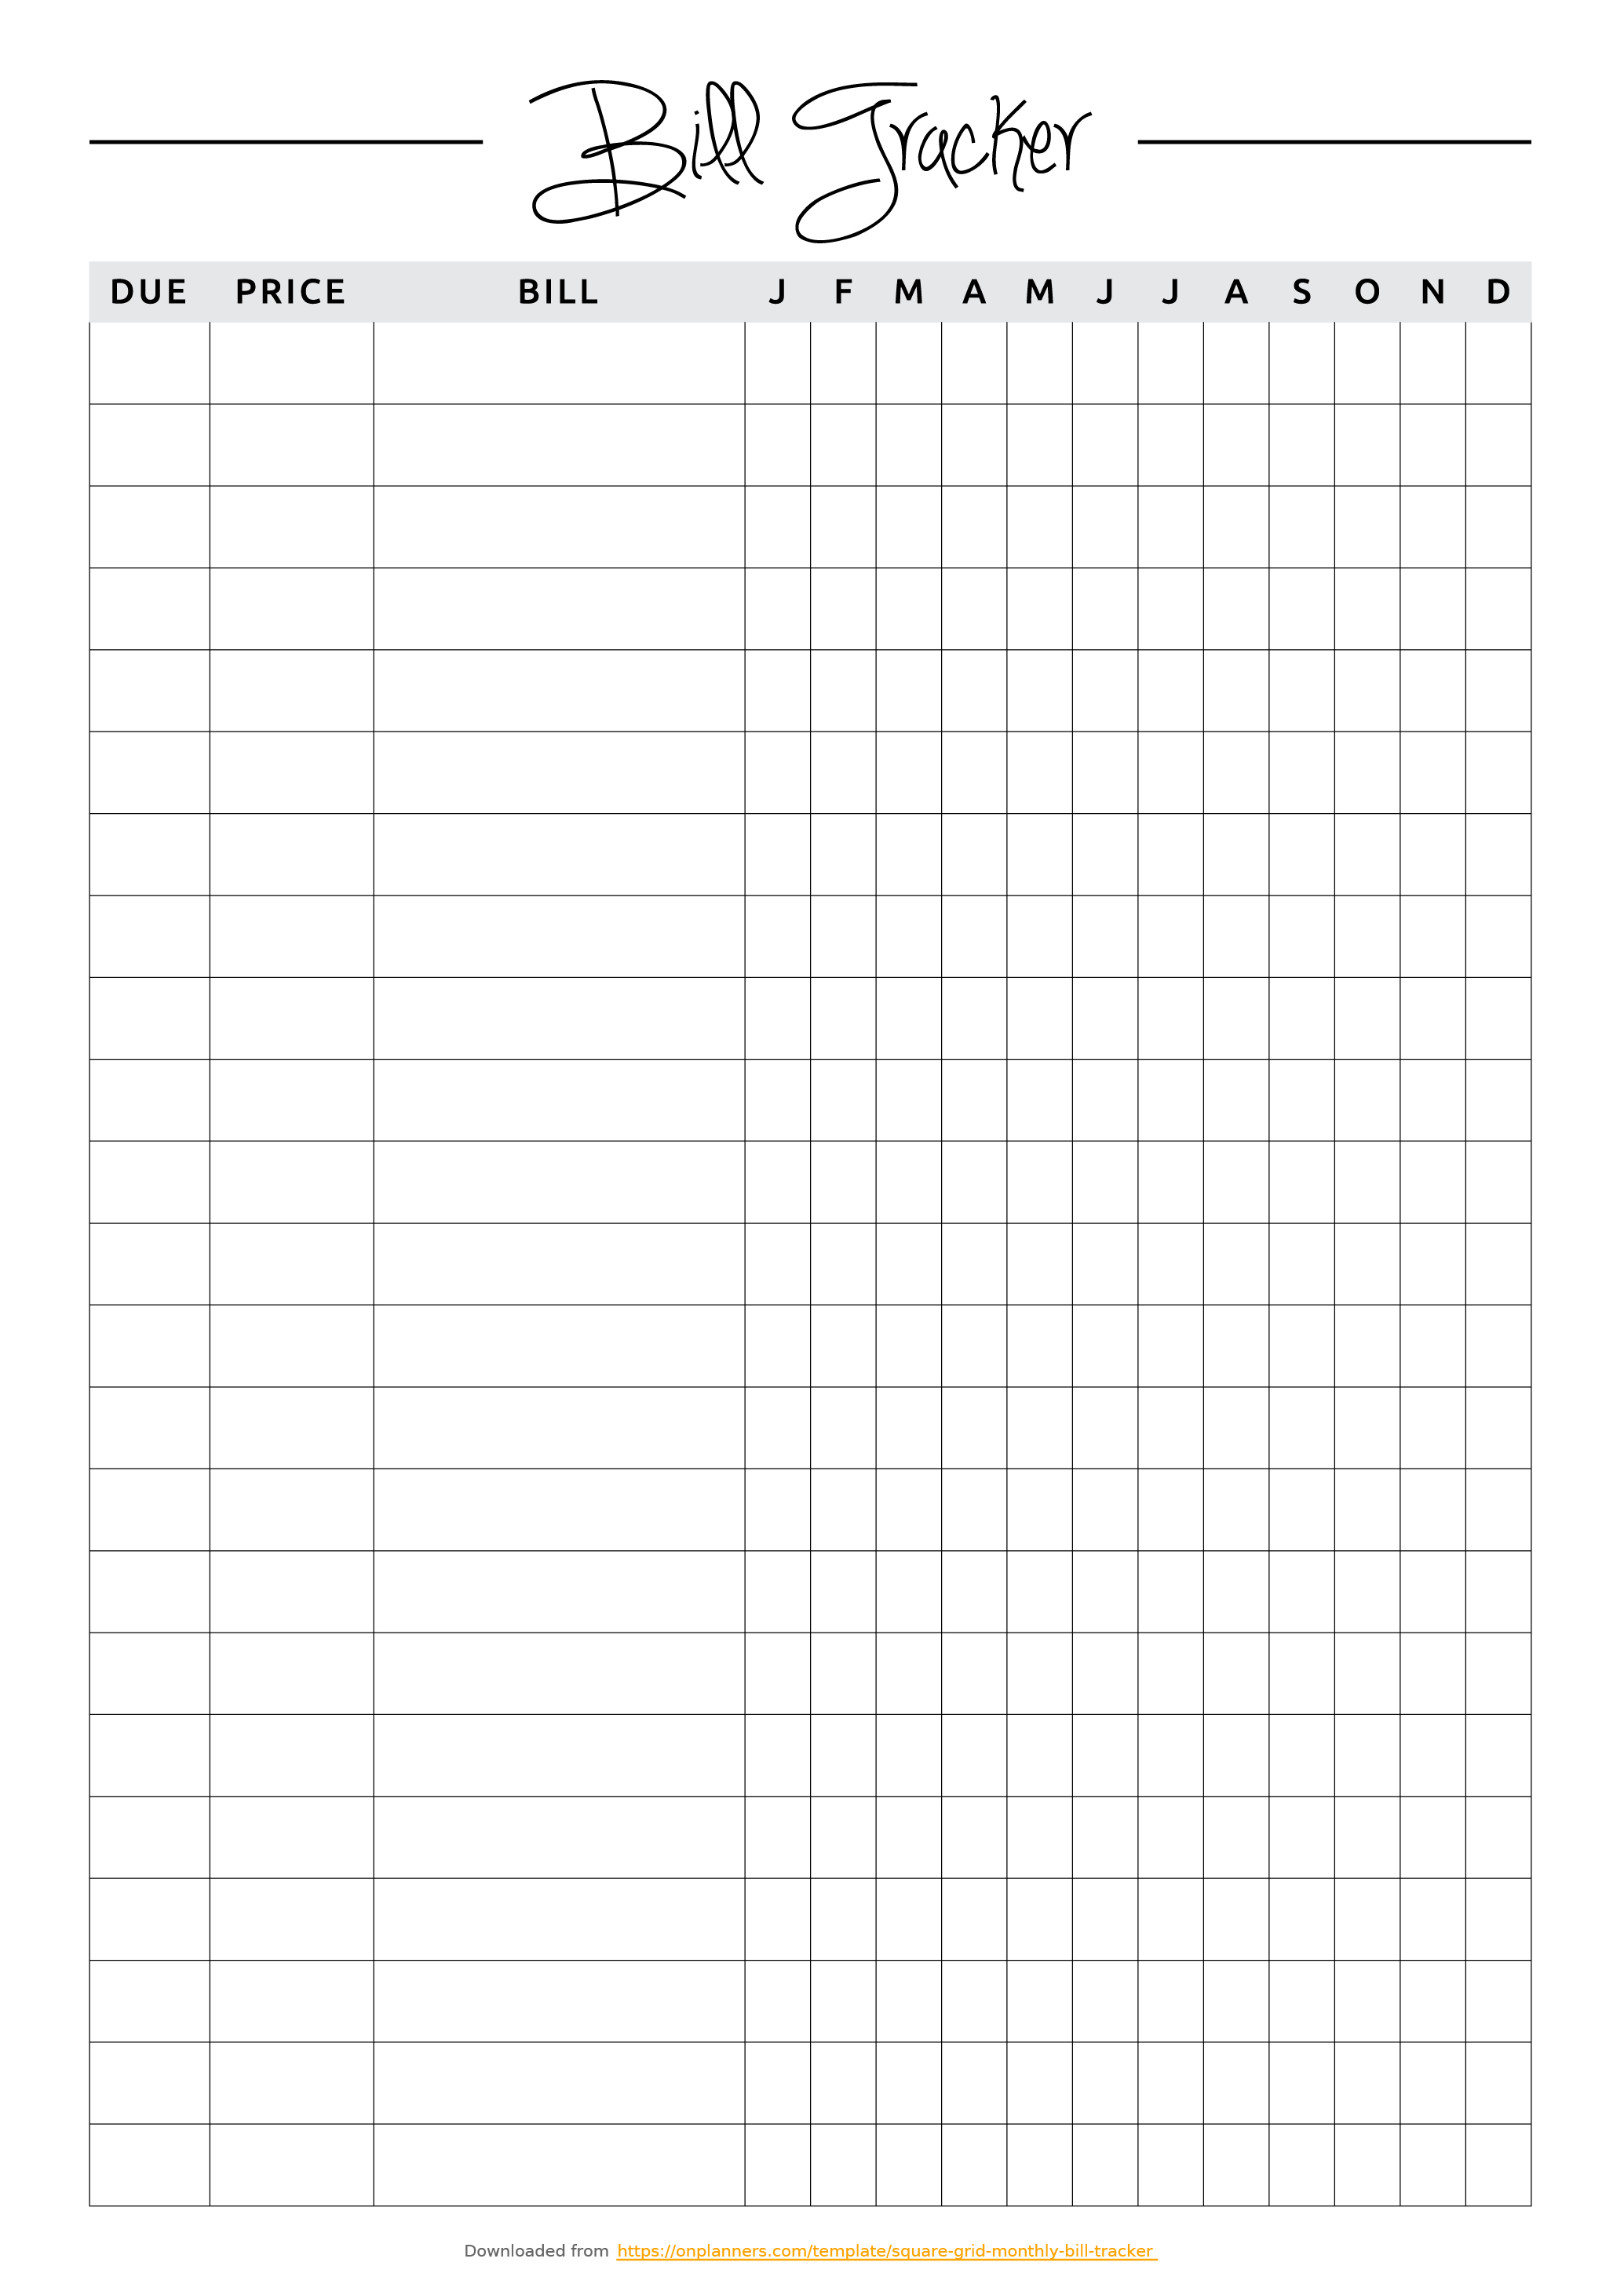 Free Printable Square Grid Monthly Bill Tracker Pdf Download - Free Printable Bill Tracker